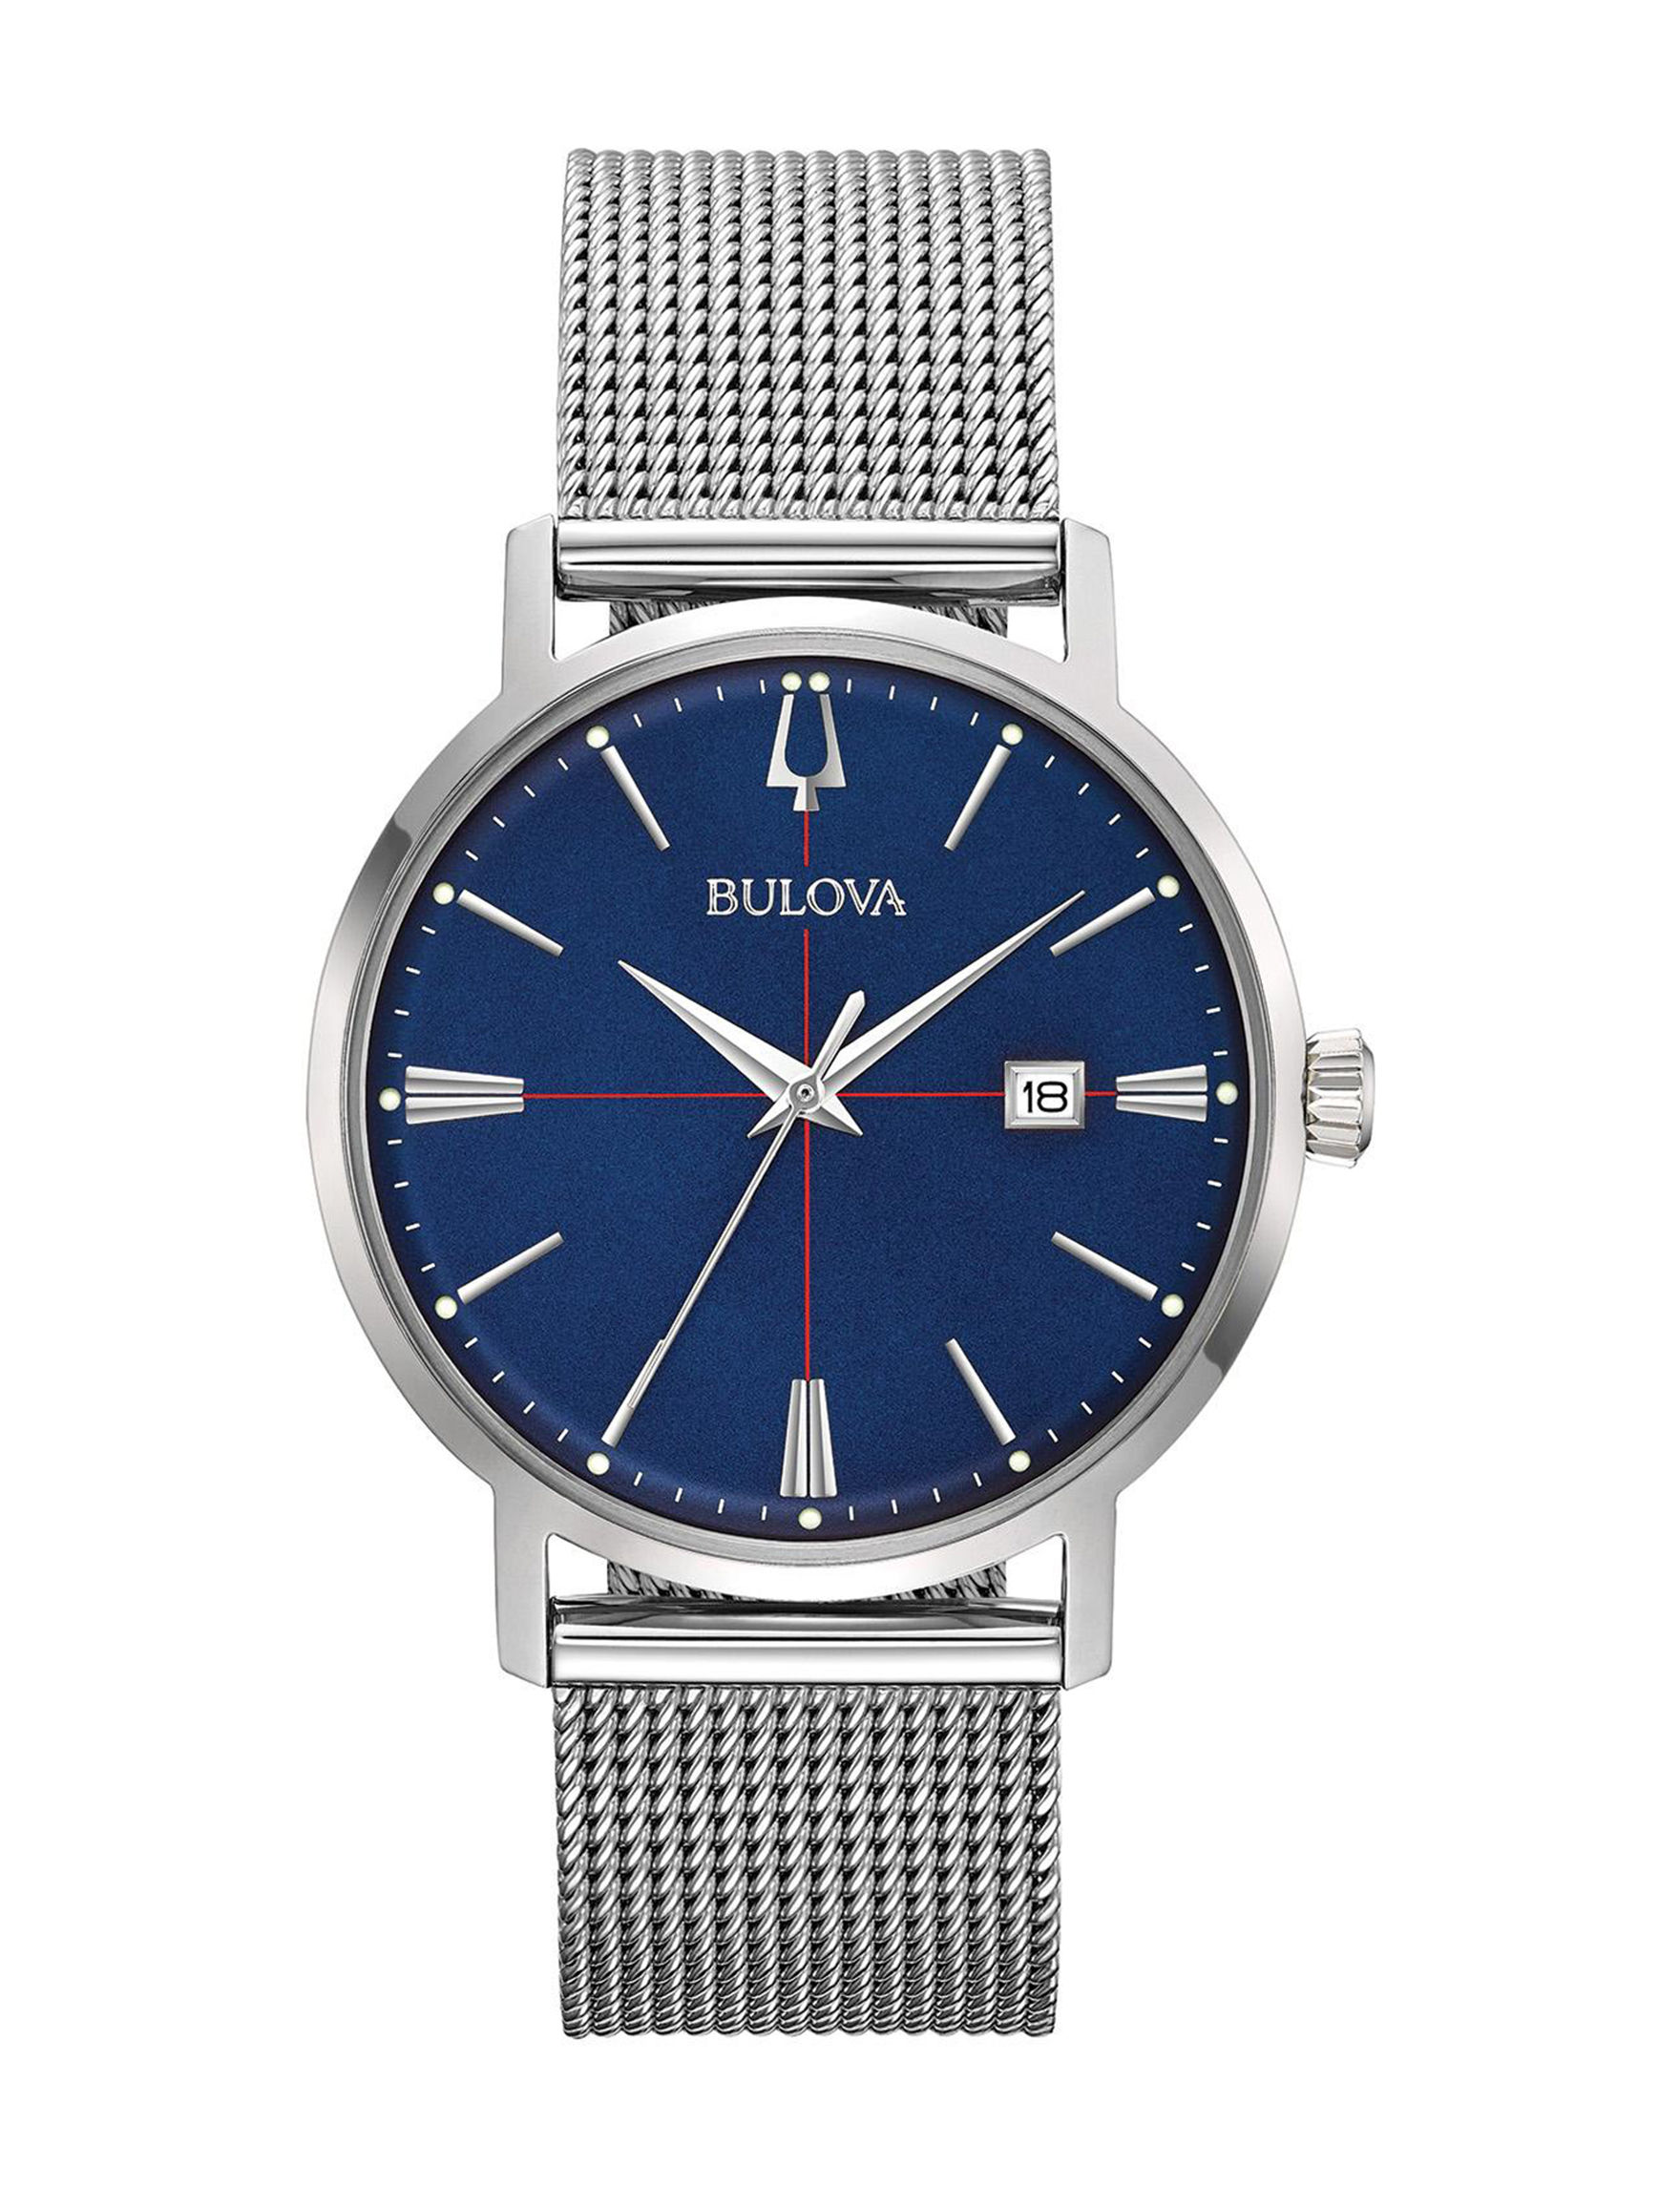 Bulova Blue / Silver Fashion Watches